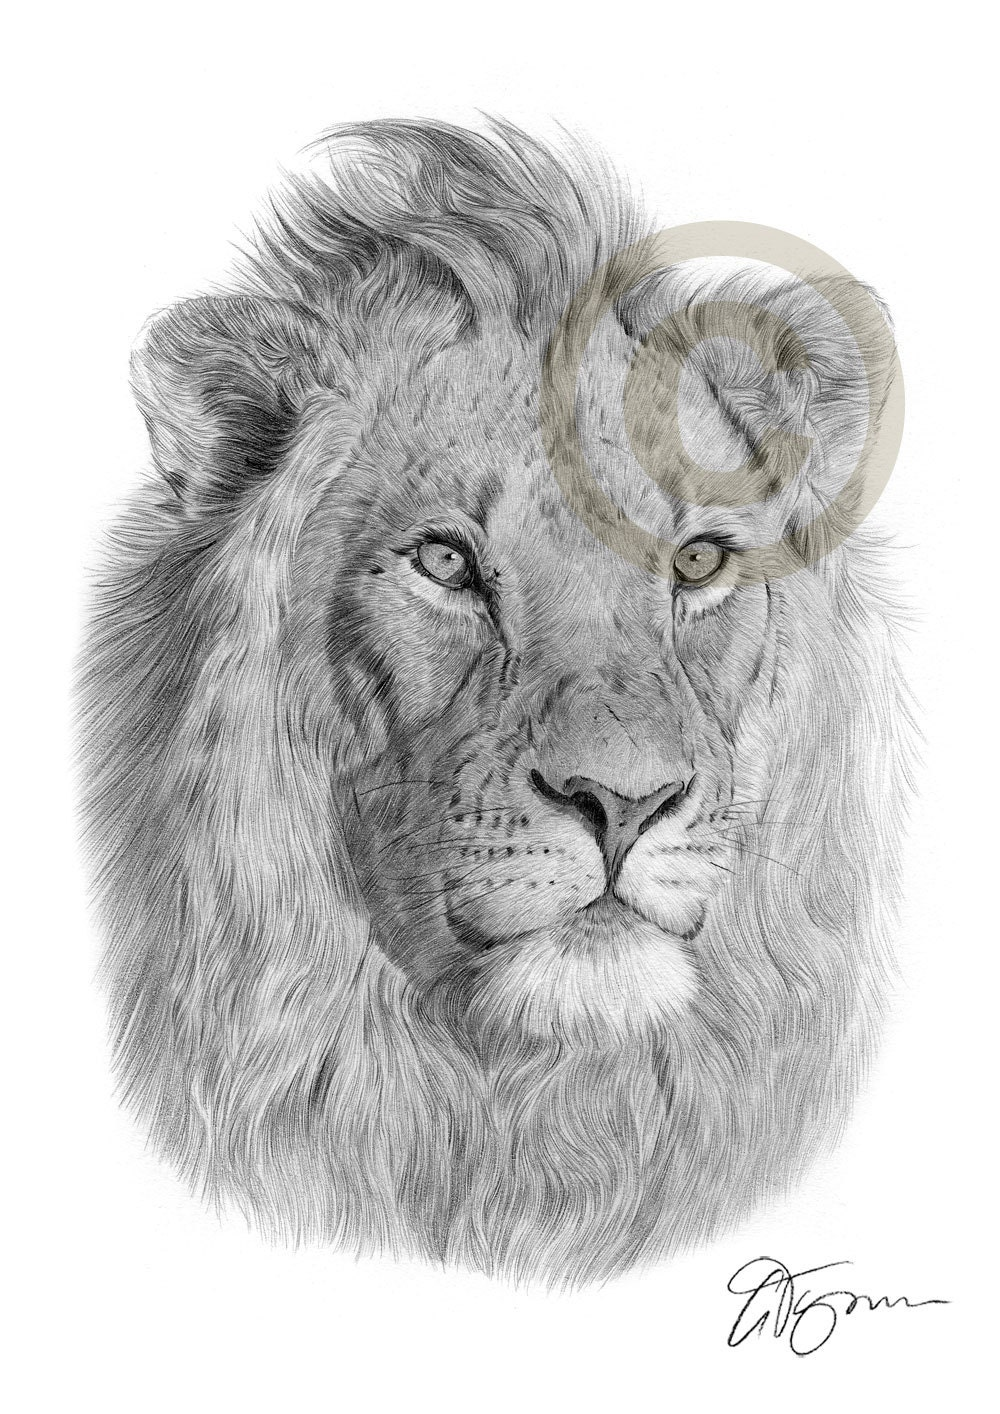 Male African Lion pencil drawing print A4 size artwork